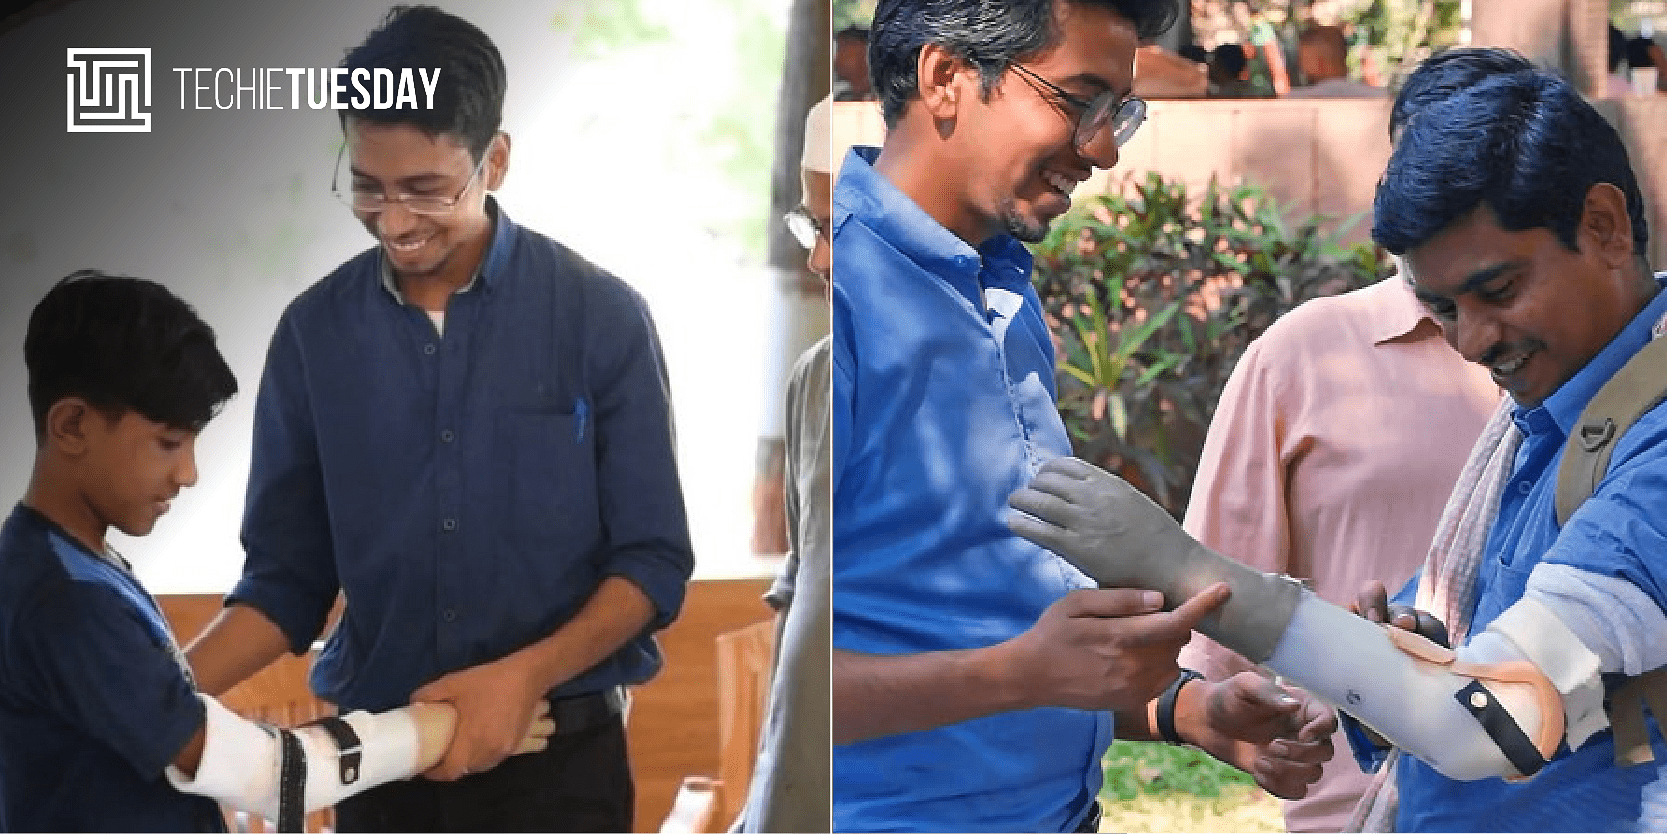 [Techie Tuesday] Meet Prashant Gade, the assistive-tech inventor whose life's purpose is to leave no person wi